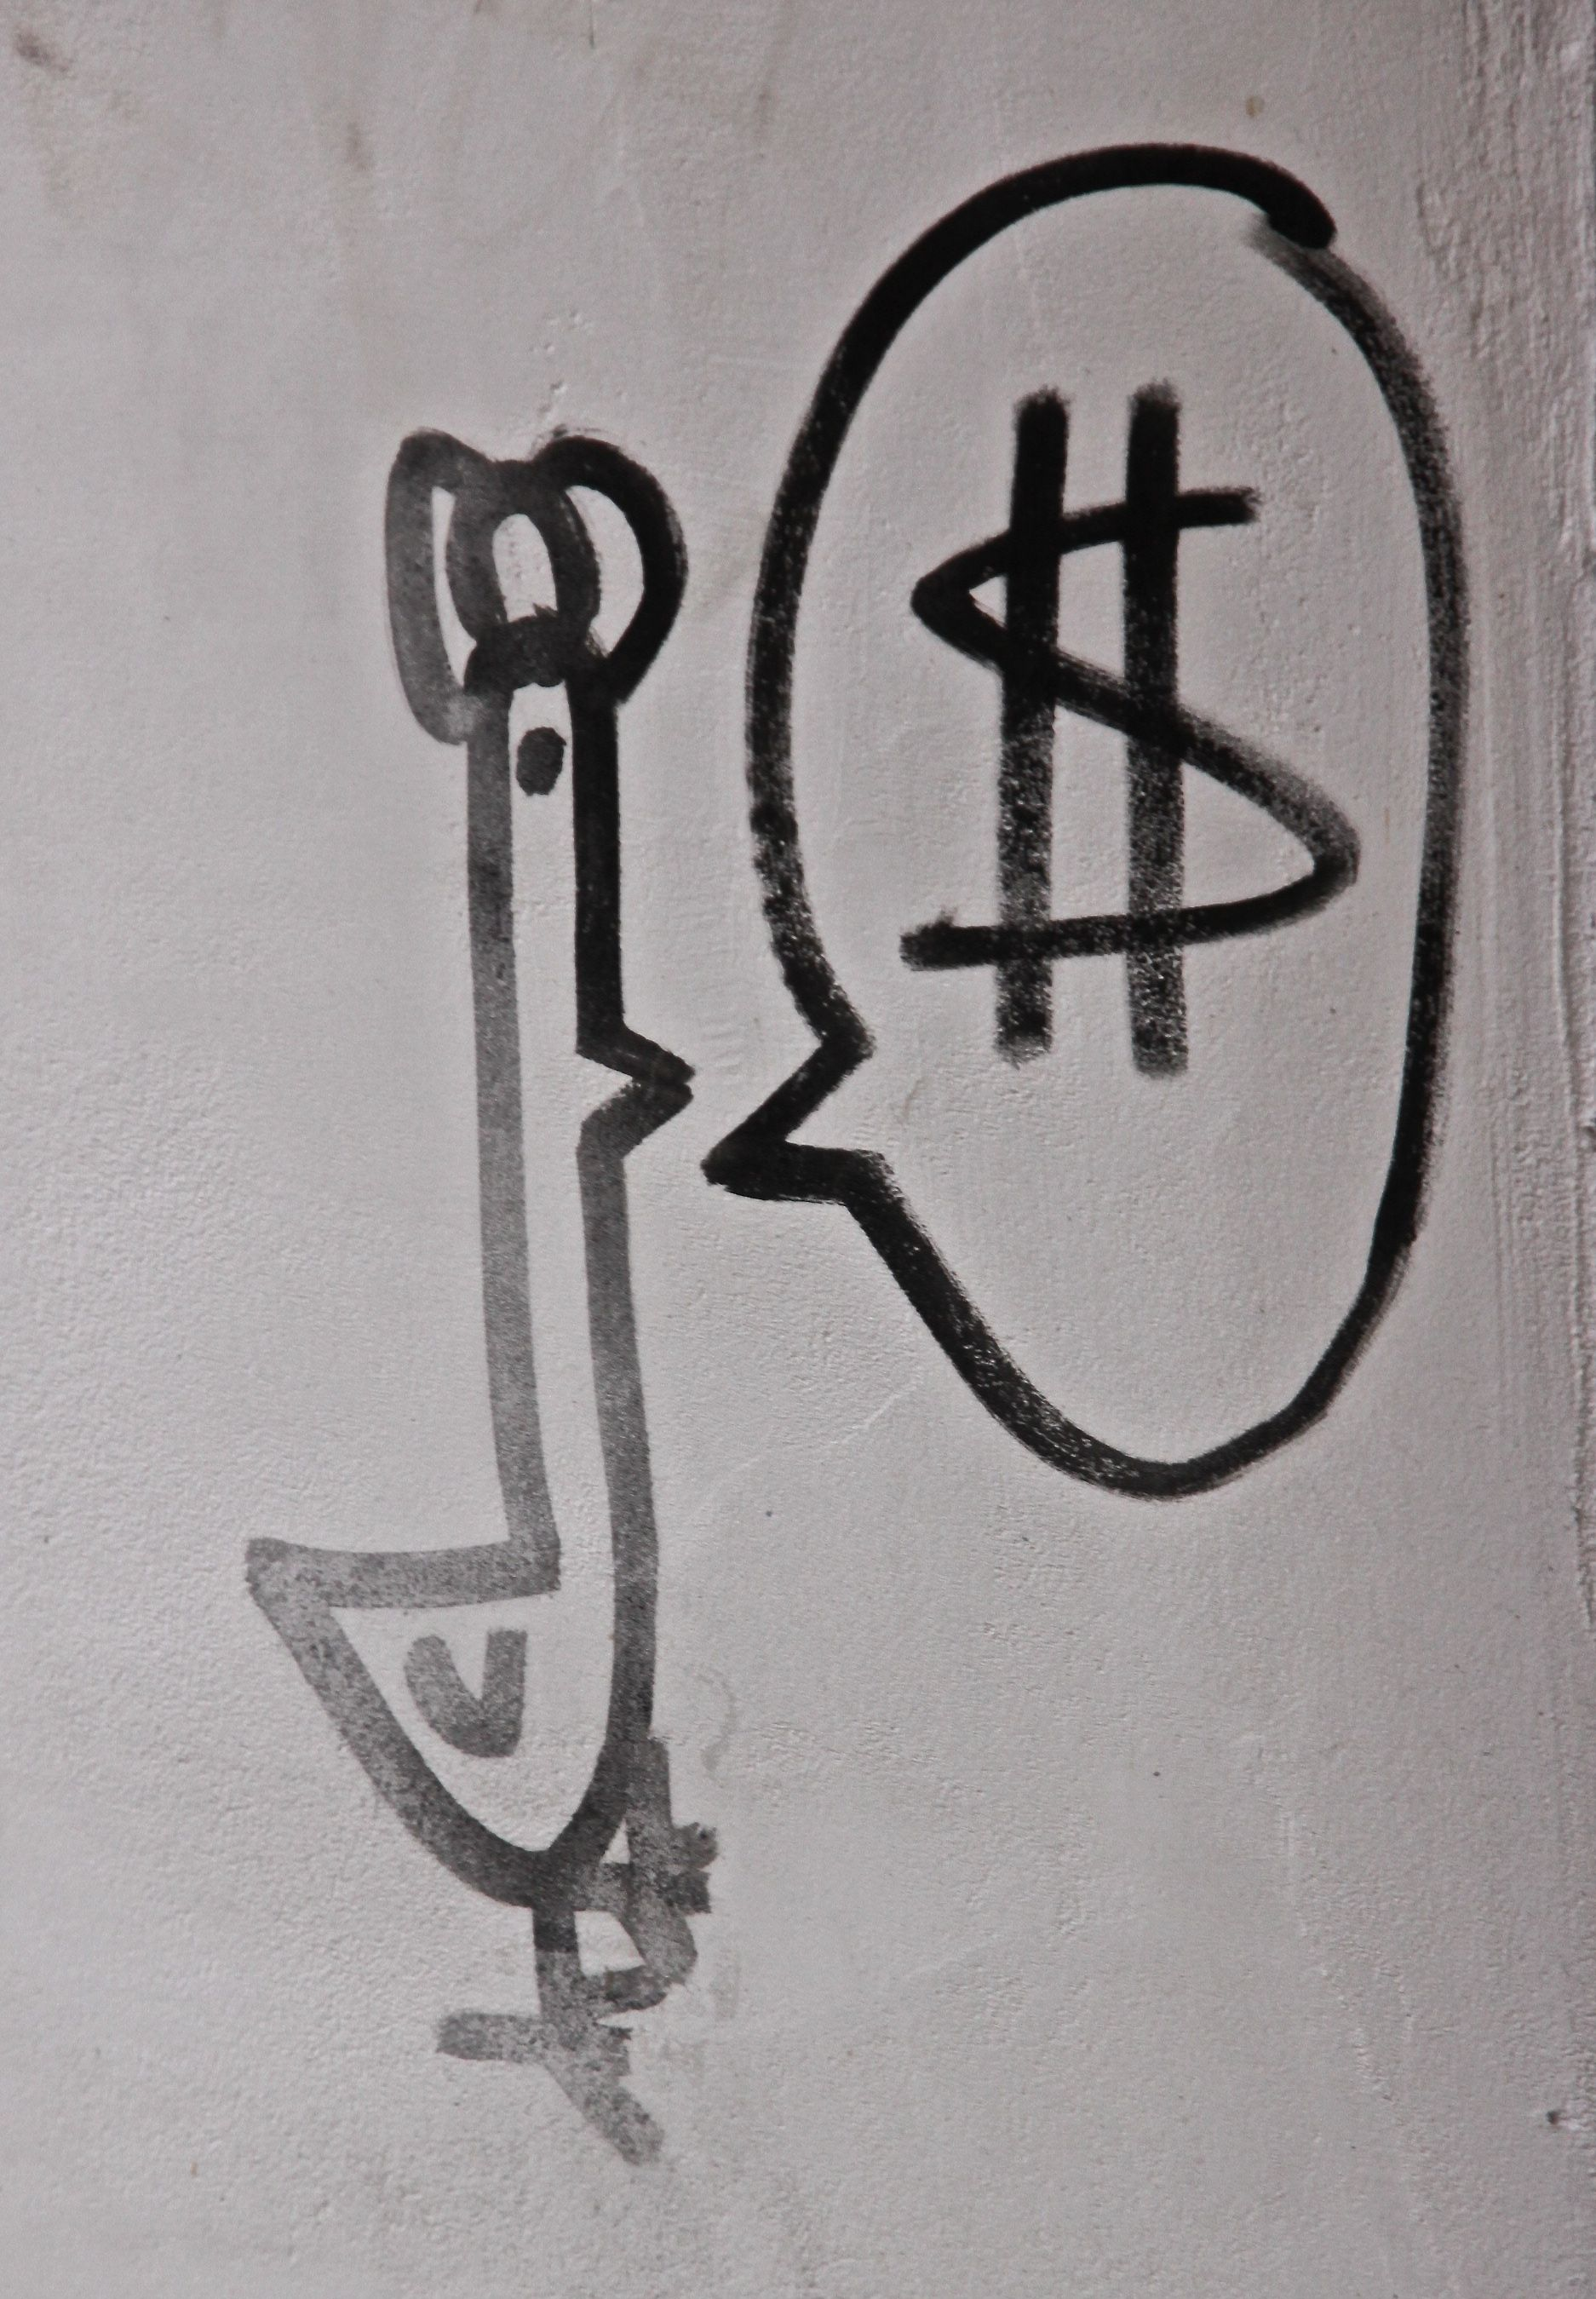 Graffiti spotted on the side of a bank in Venice, presumably commenting on the economic crisis